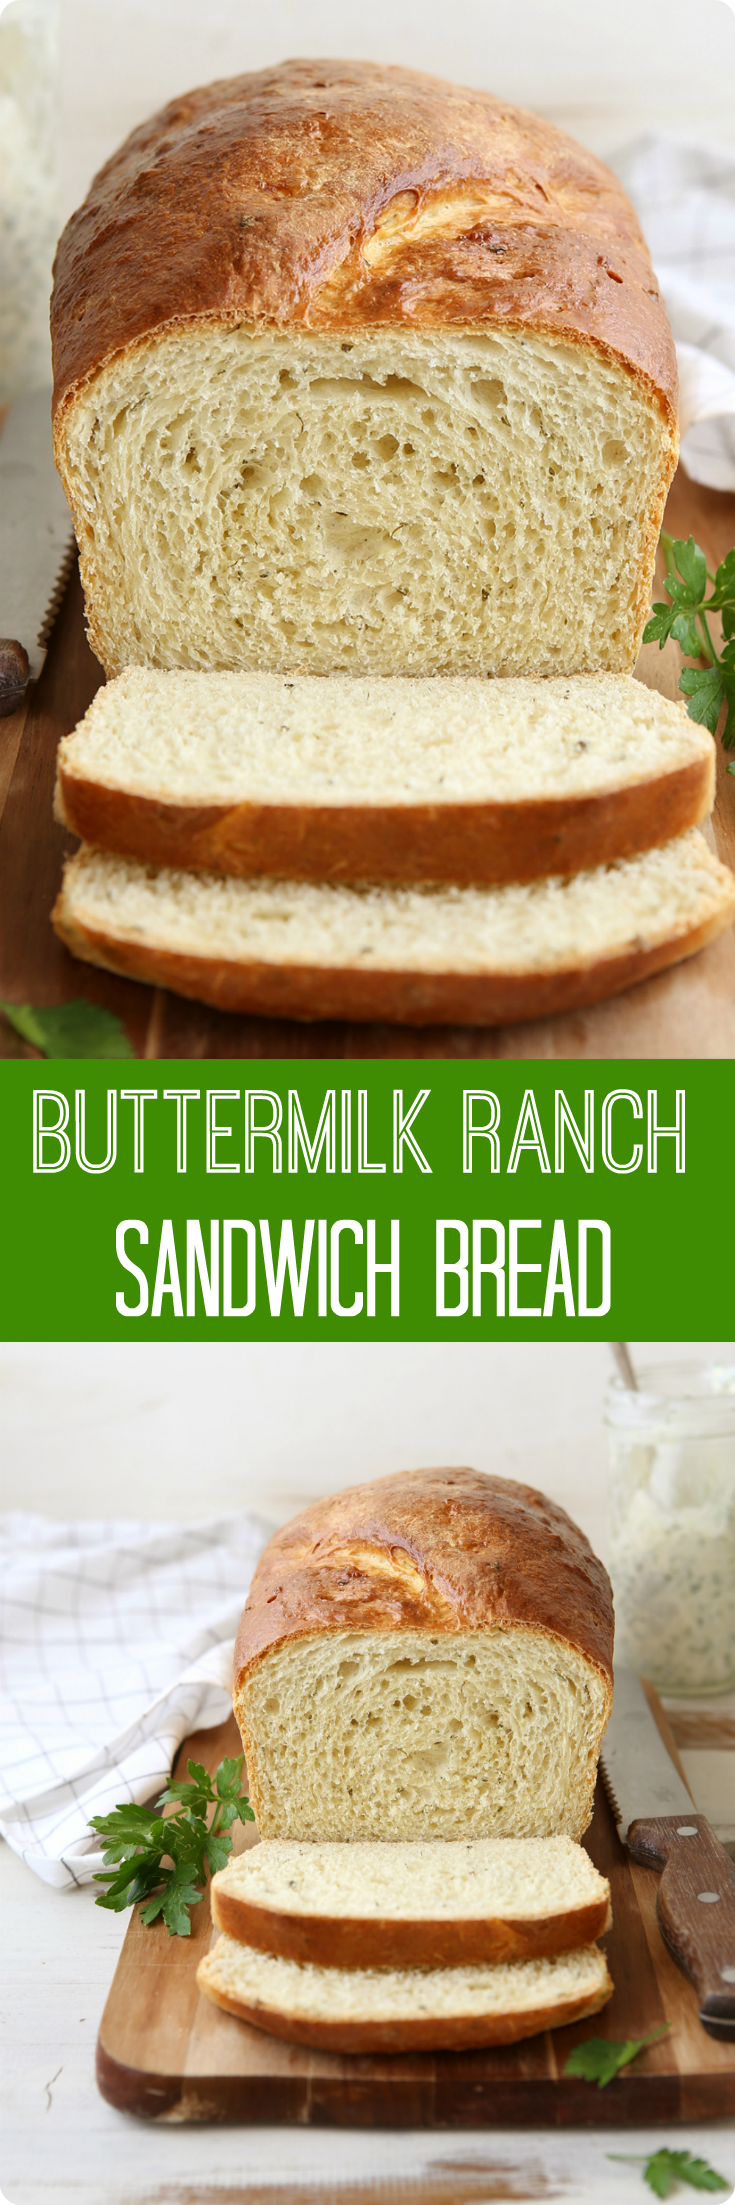 Buttermilk Ranch Sandwich Bread Recipe Recipe Sandwich Bread Delicious Bread Recipes